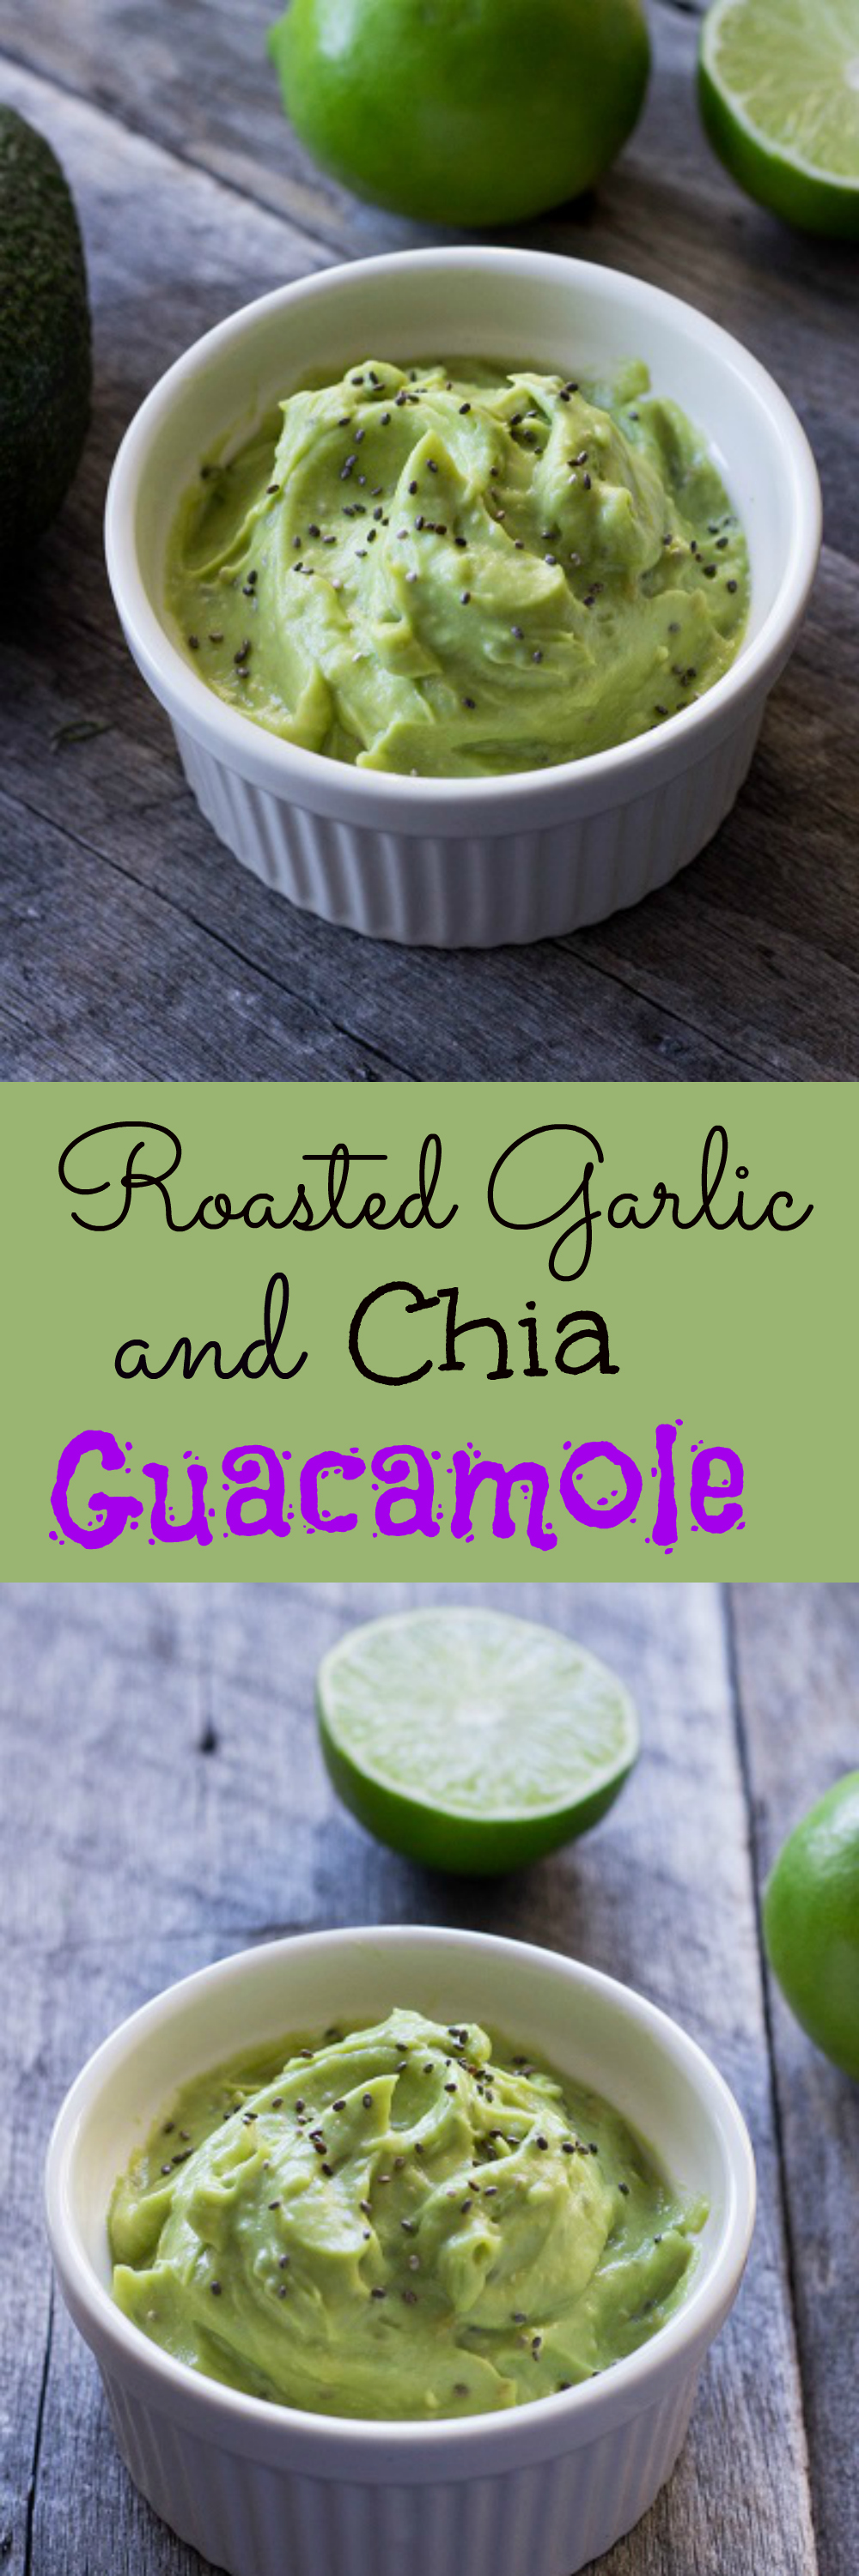 Roasted Garlic and Chia Guacamole - Eat Thrive Glow